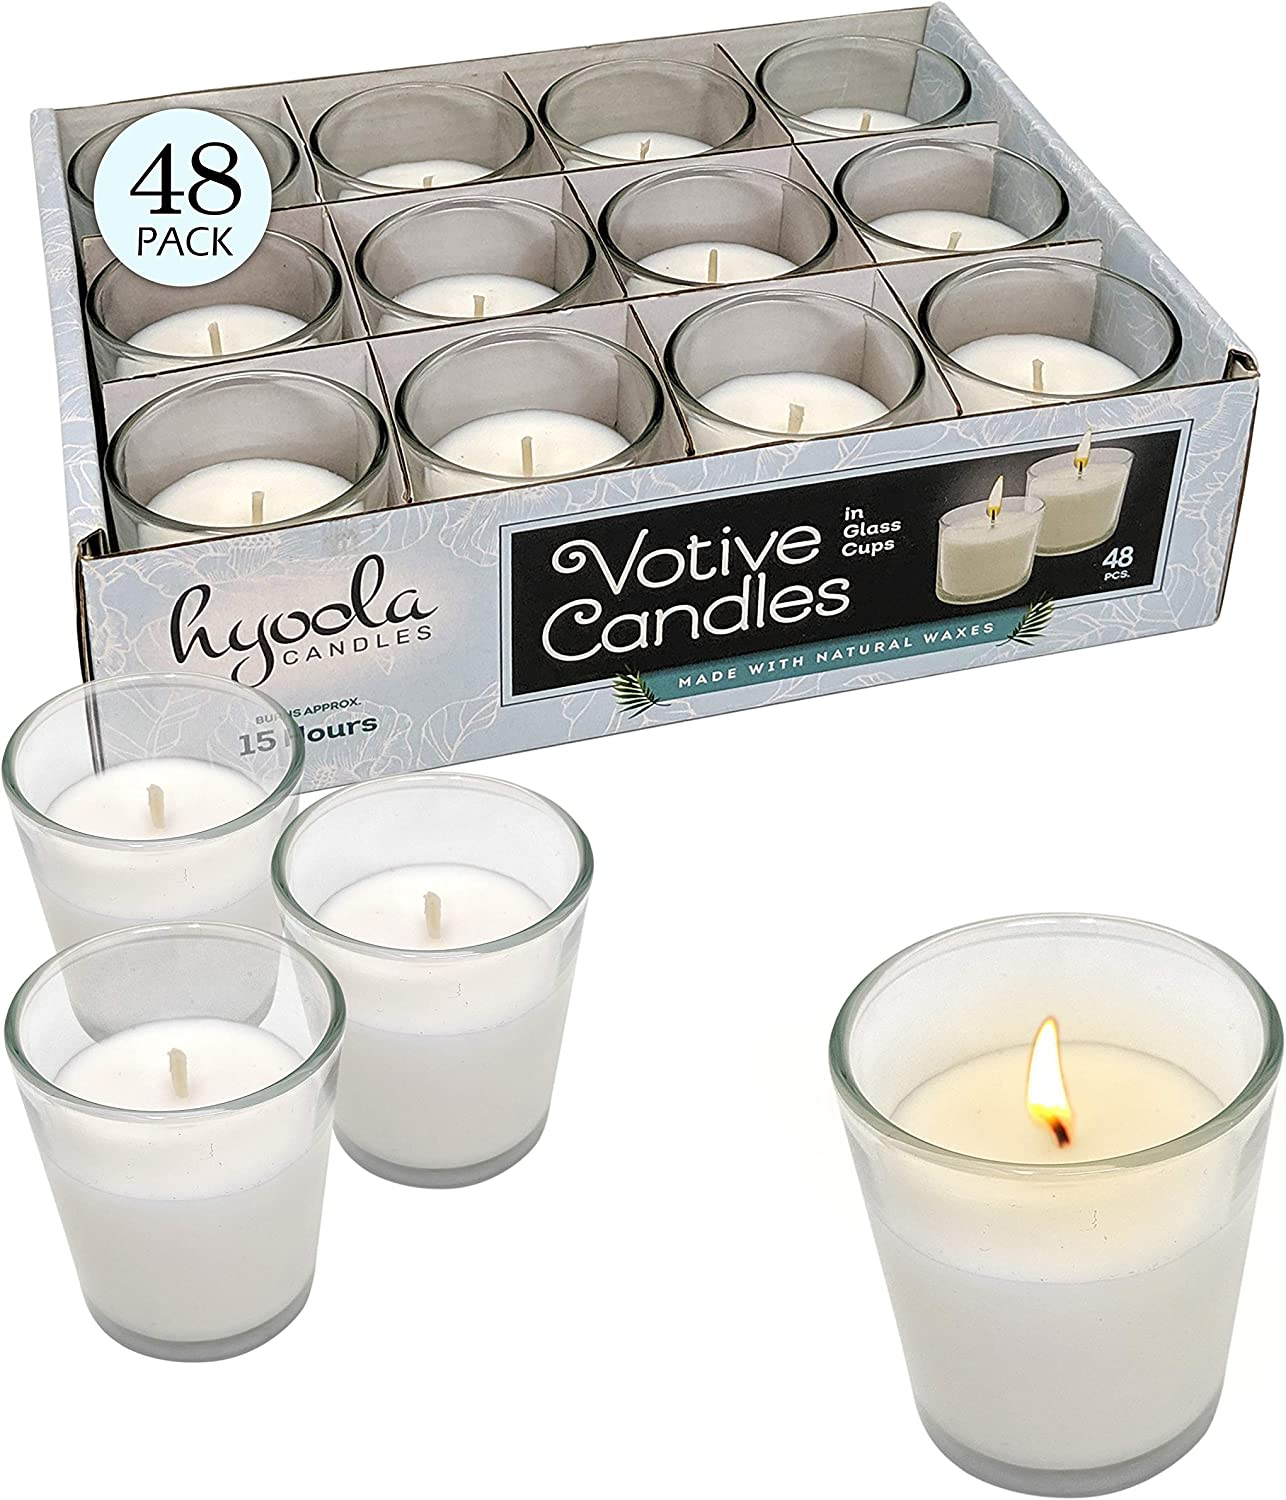 White Votive Candles - 48 Pack - Clear Glass Cups, Unscented, Extra Long 15 Hour Burn Time - for Party Decorations, Birthday, Wedding and Dinner Centerpieces - Hyoola